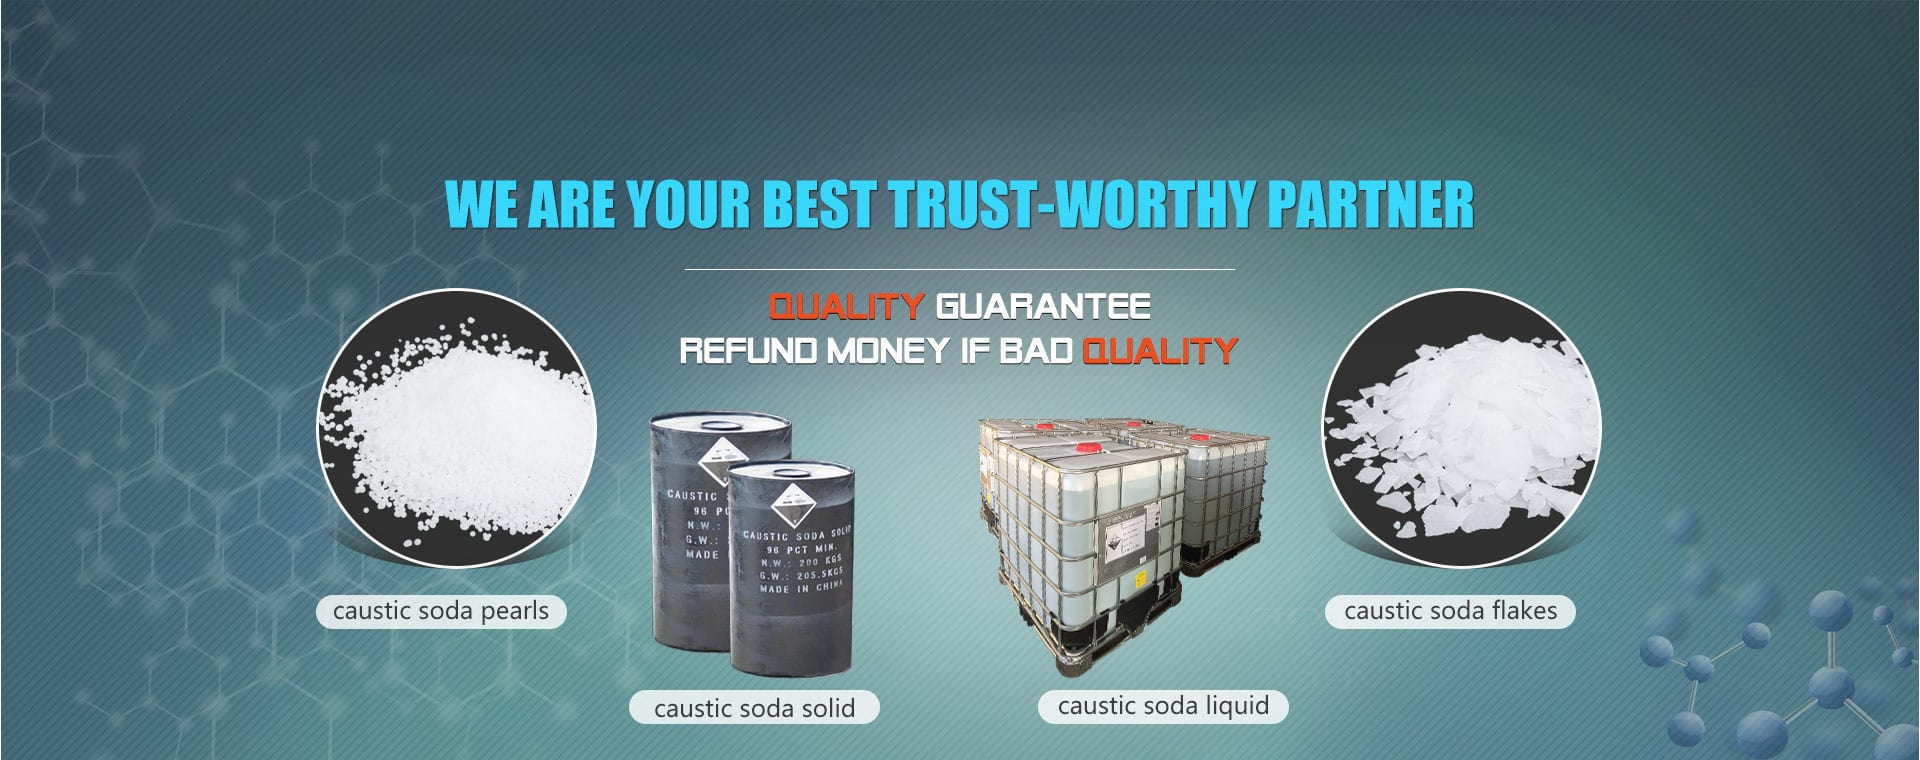 WE ARE YOUR BEST TRUST-WORTHY PARTNER